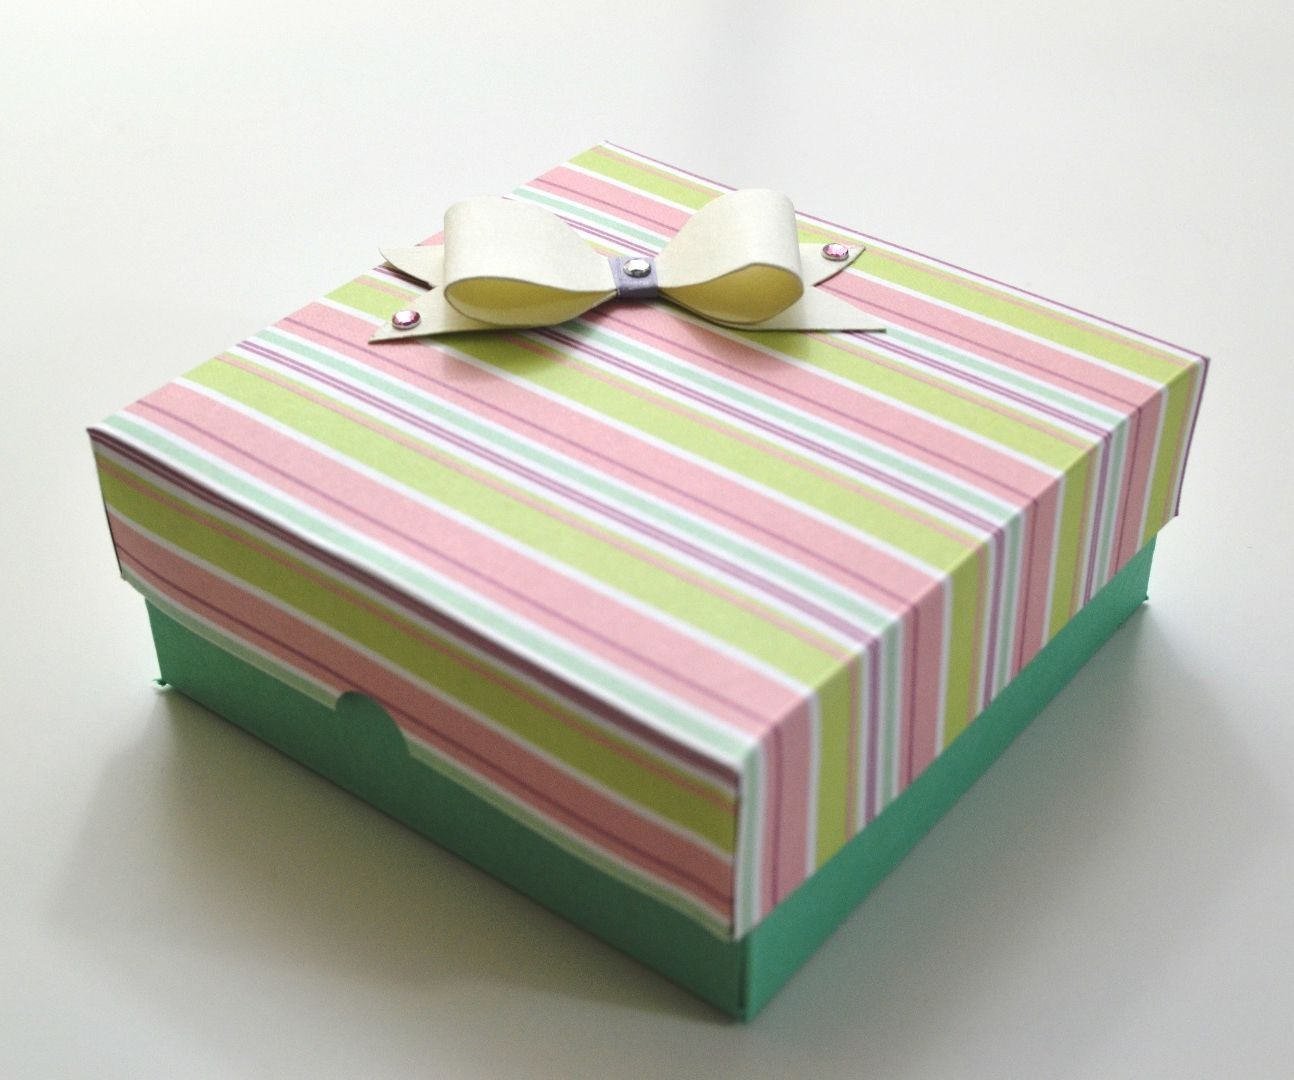 How To Make A Gift Box For Valentine S Day Diy Paper Crafts Valentines Gift Box Valentine S Day Diy Paper Crafts Diy